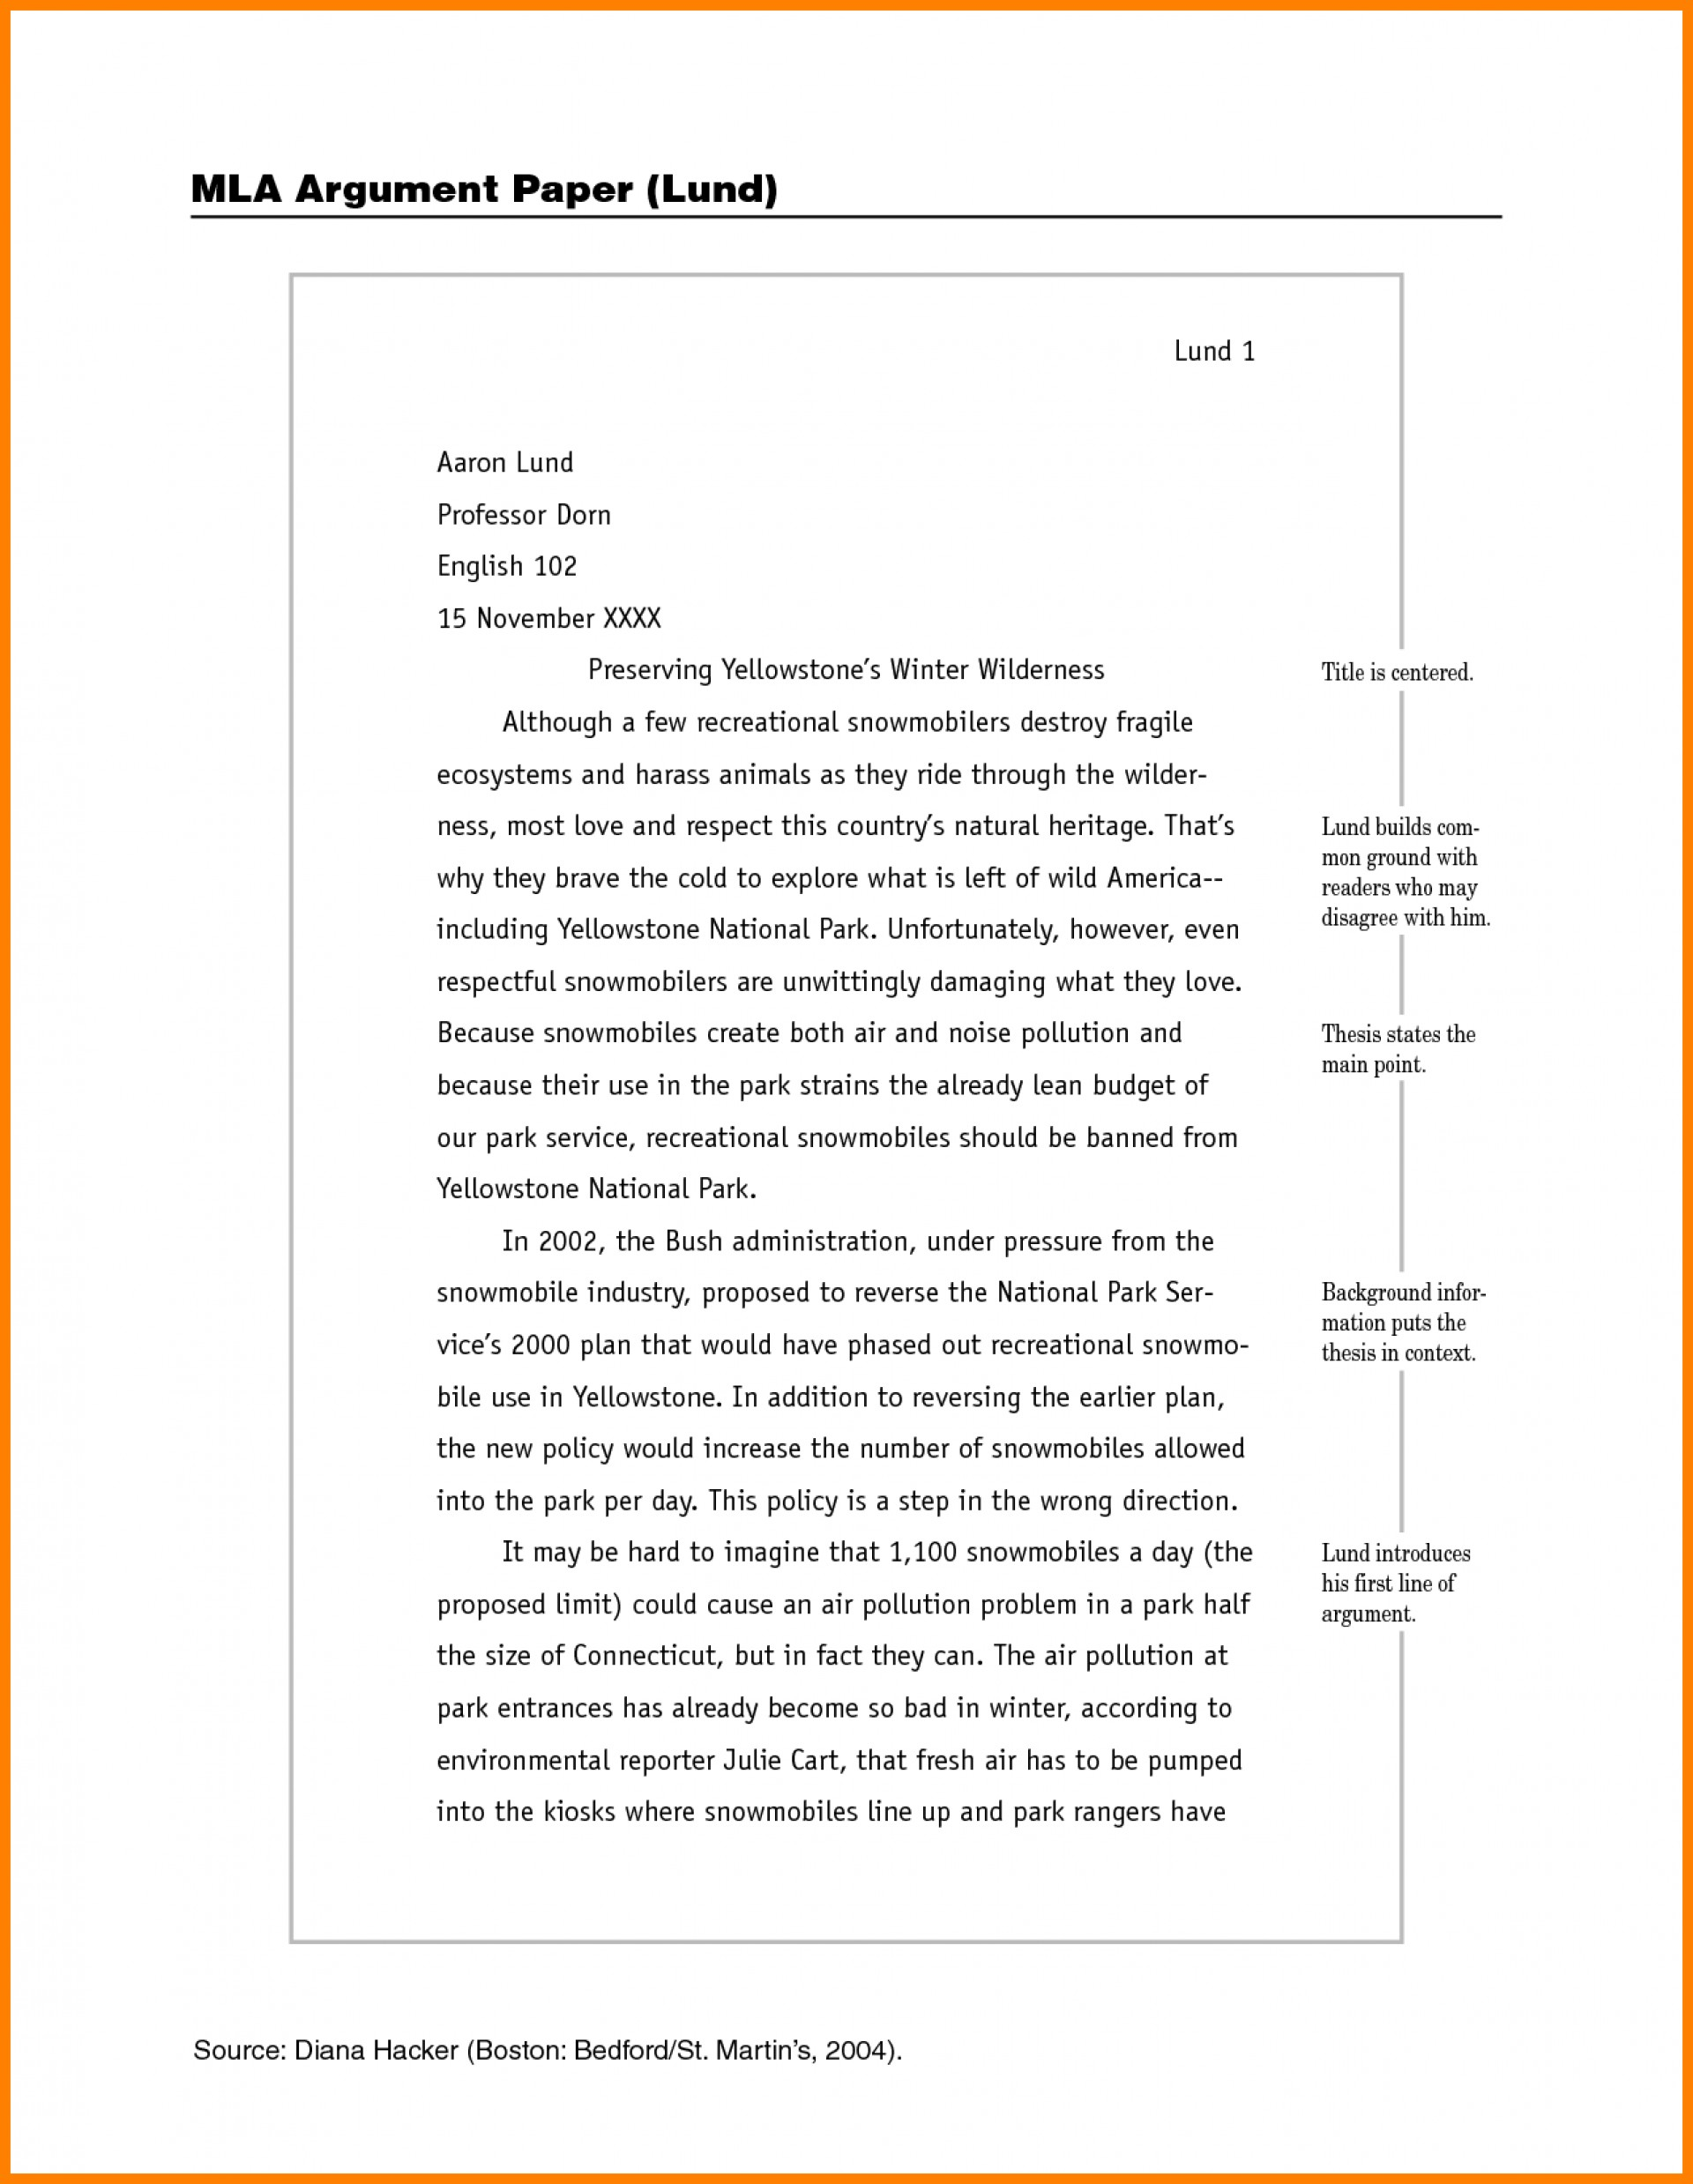 003 How To Write Research Paper Sample Mla Unusual Papers Outline With Cover Page Daly 1920